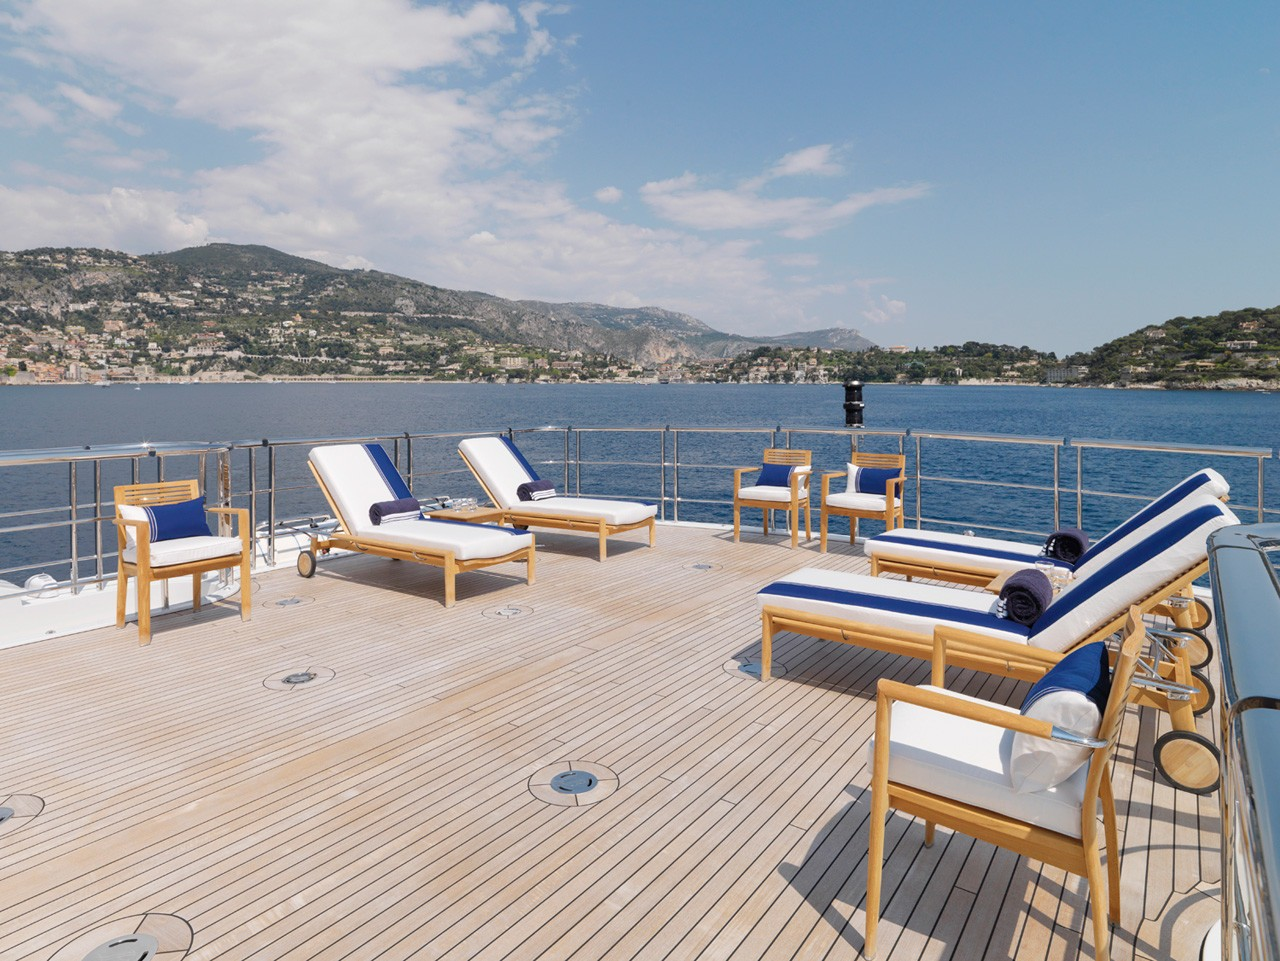 spacious sundeck area for sunbathing or relaxing